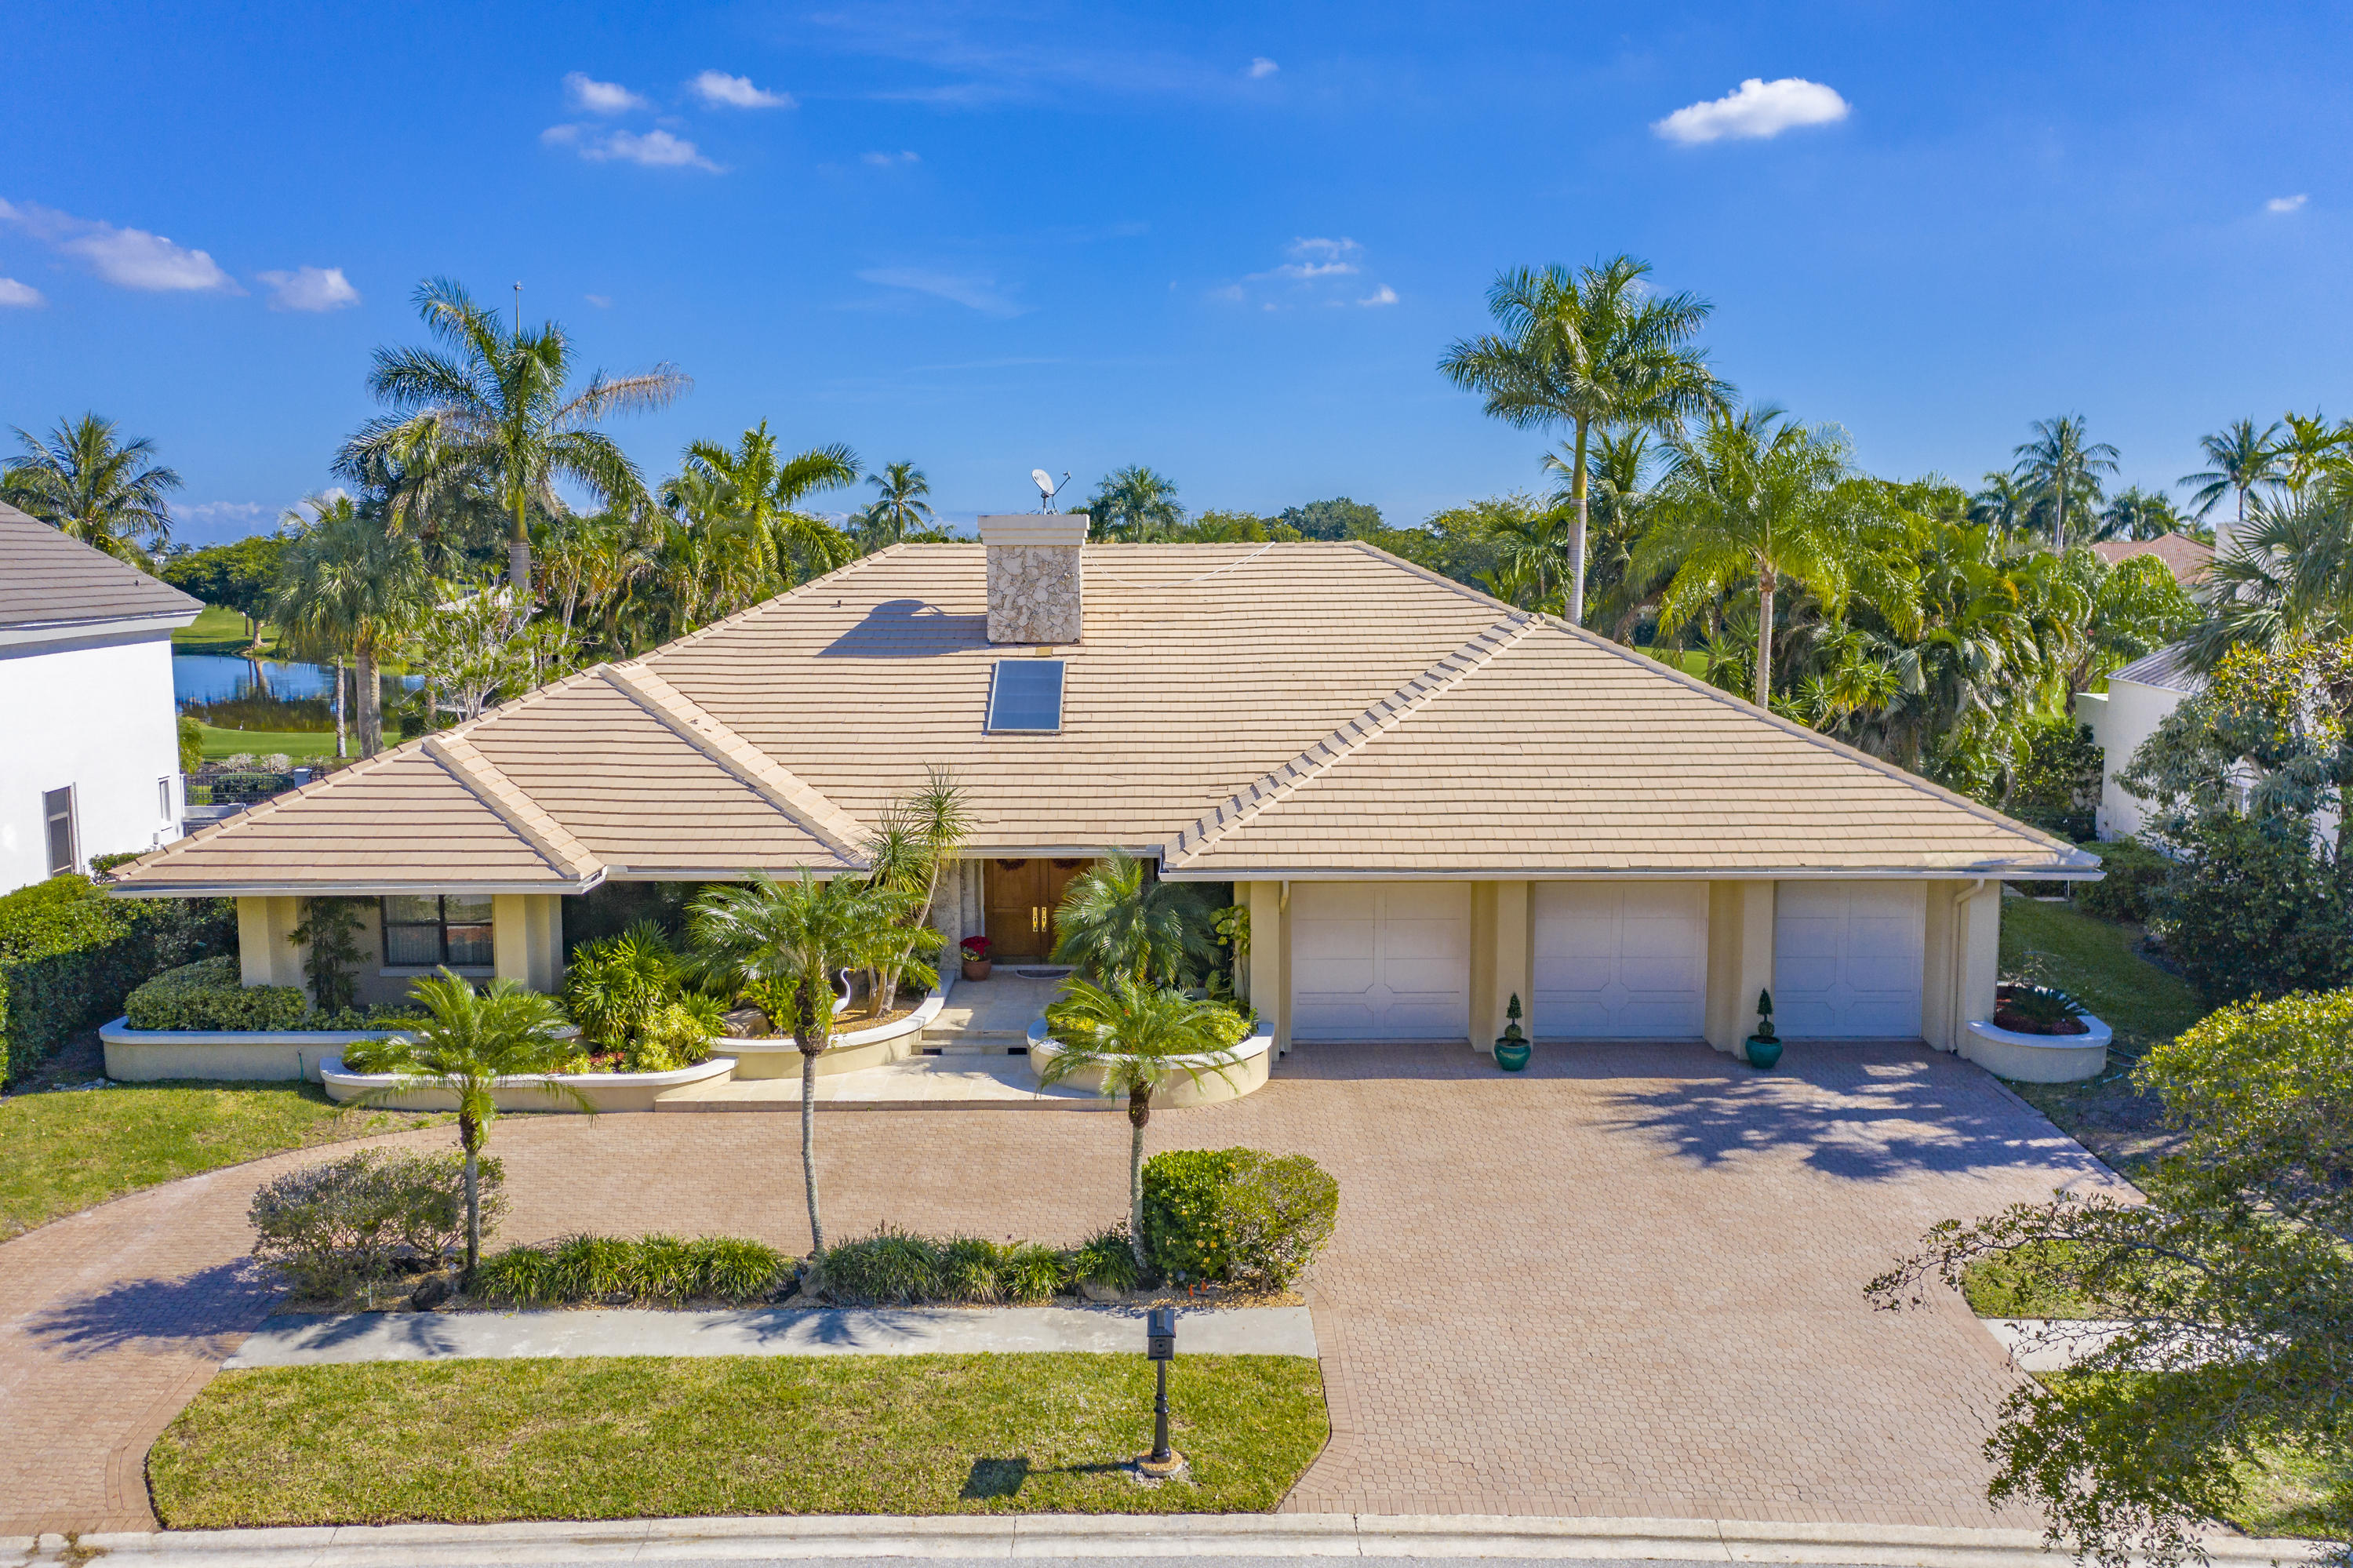 Home for sale in Boca Grove Plantation Boca Raton Florida